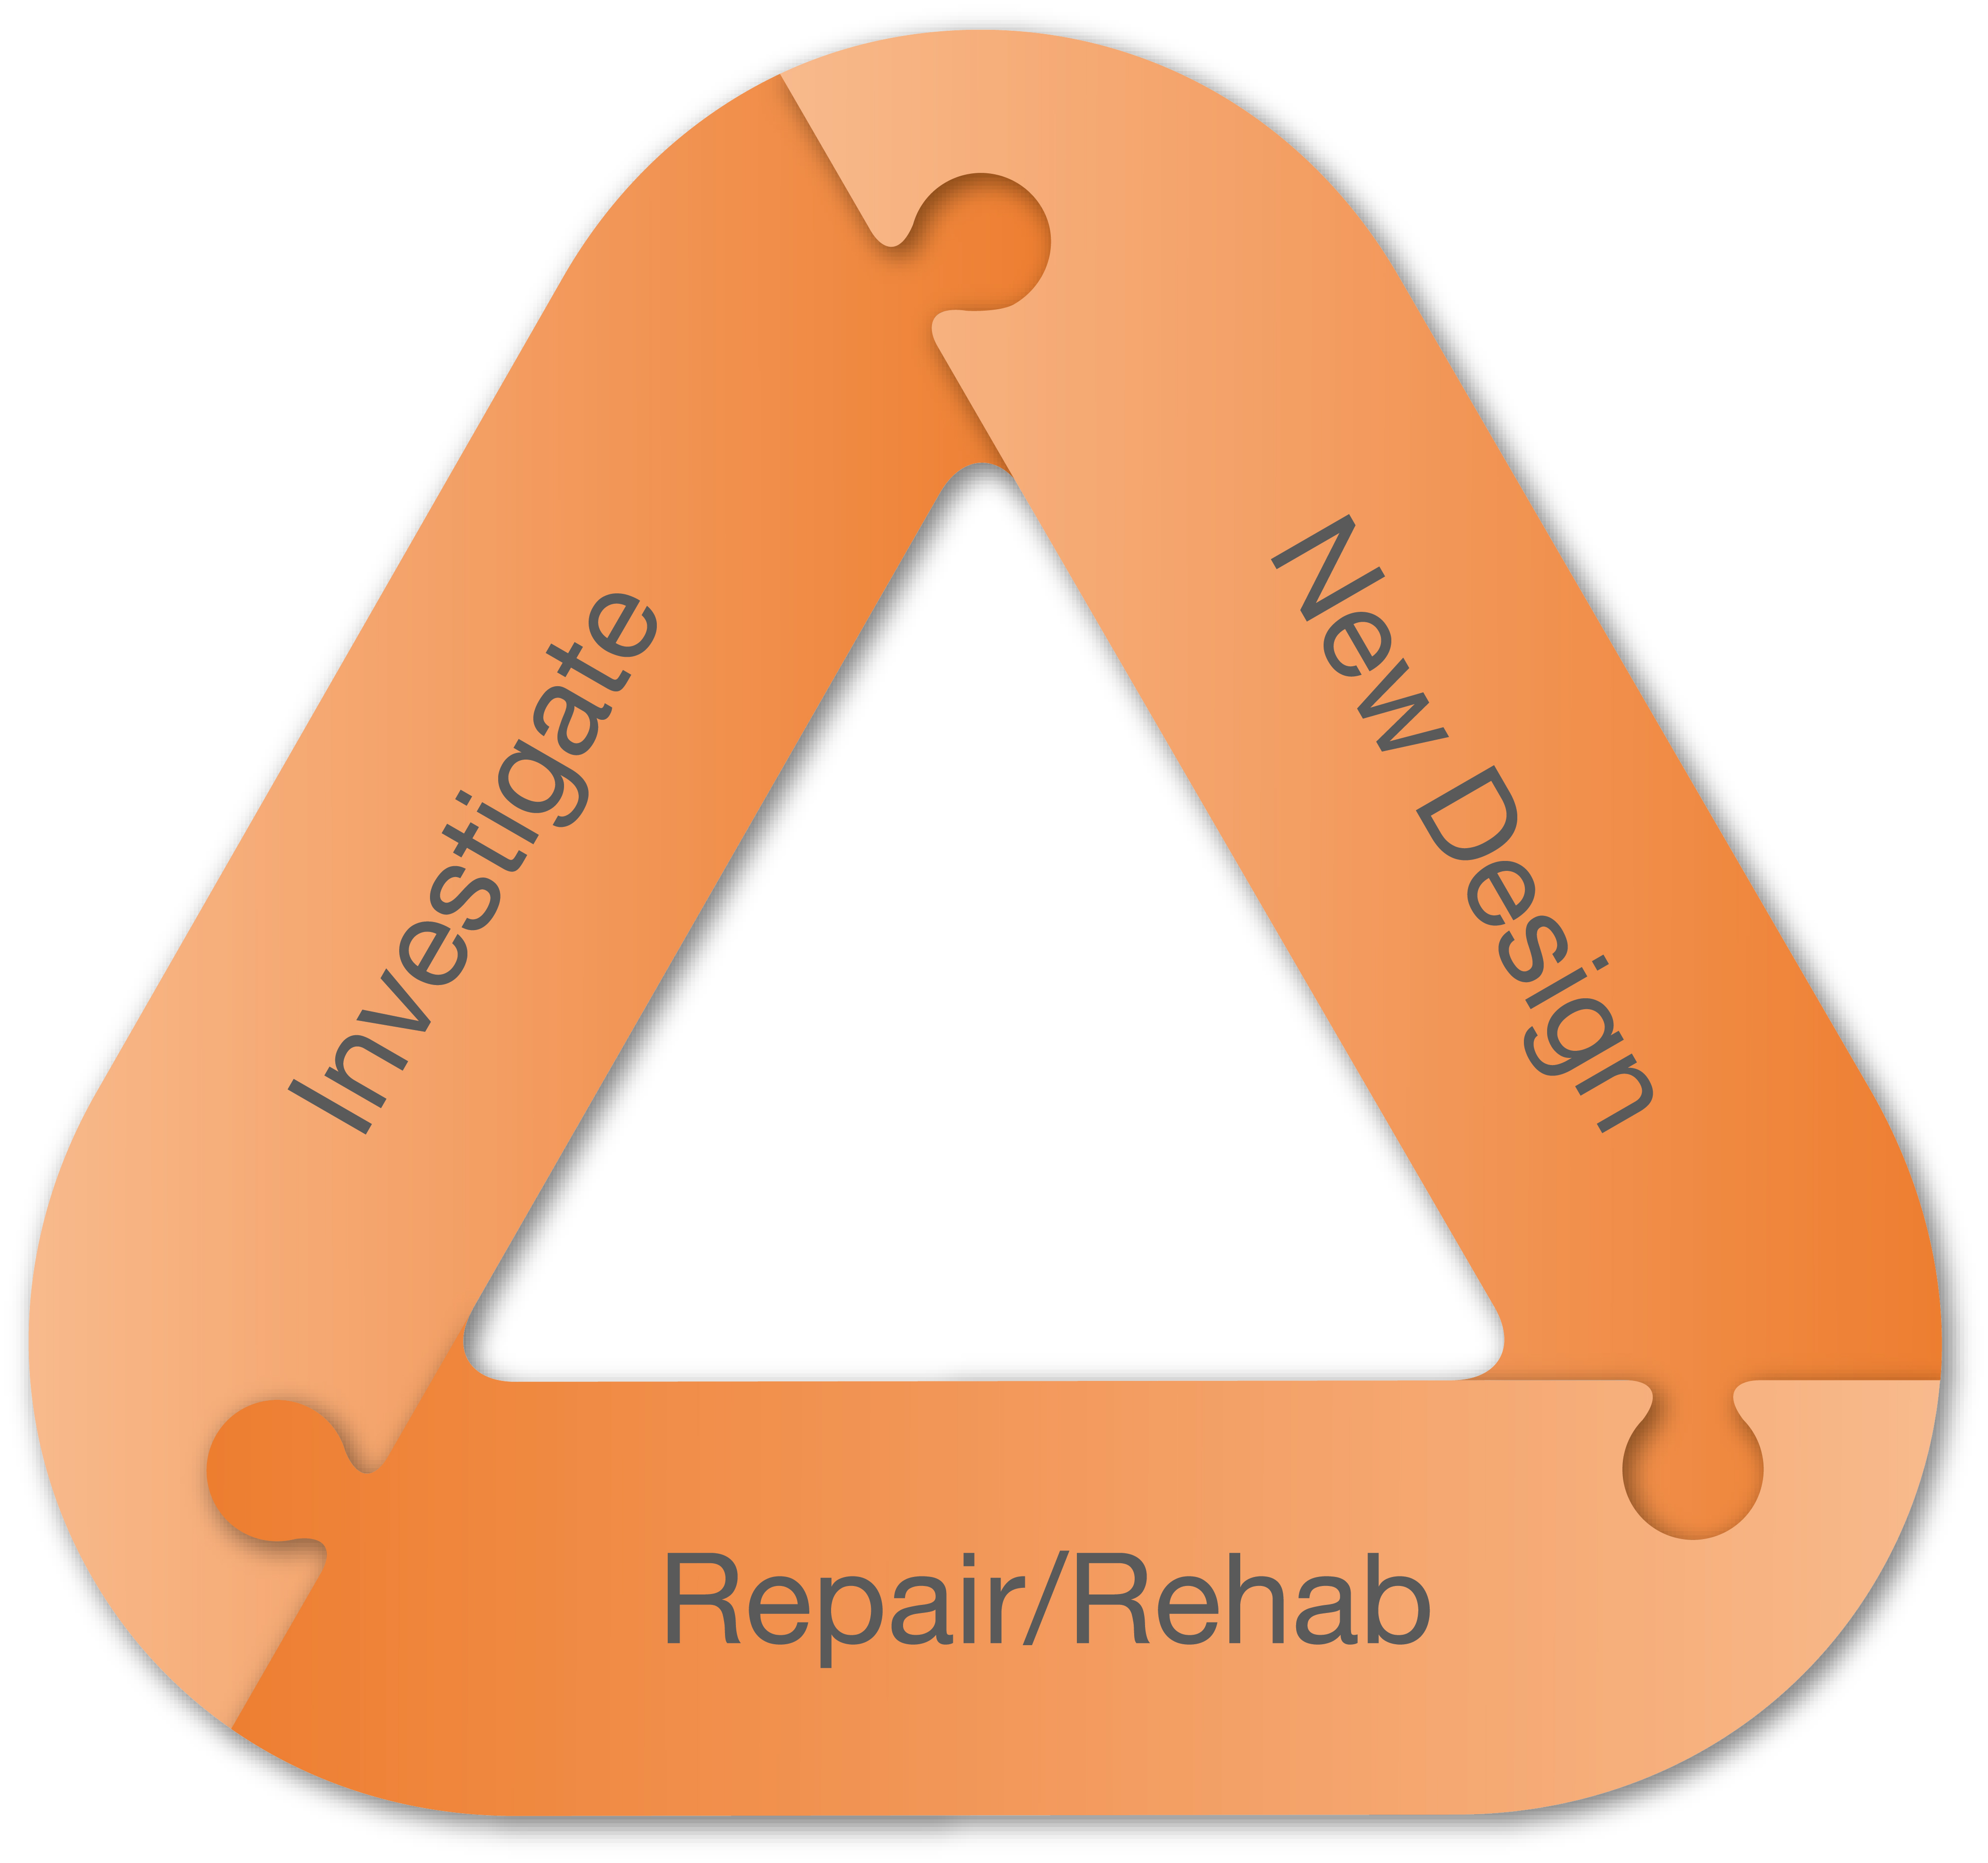 Engineering services triangle